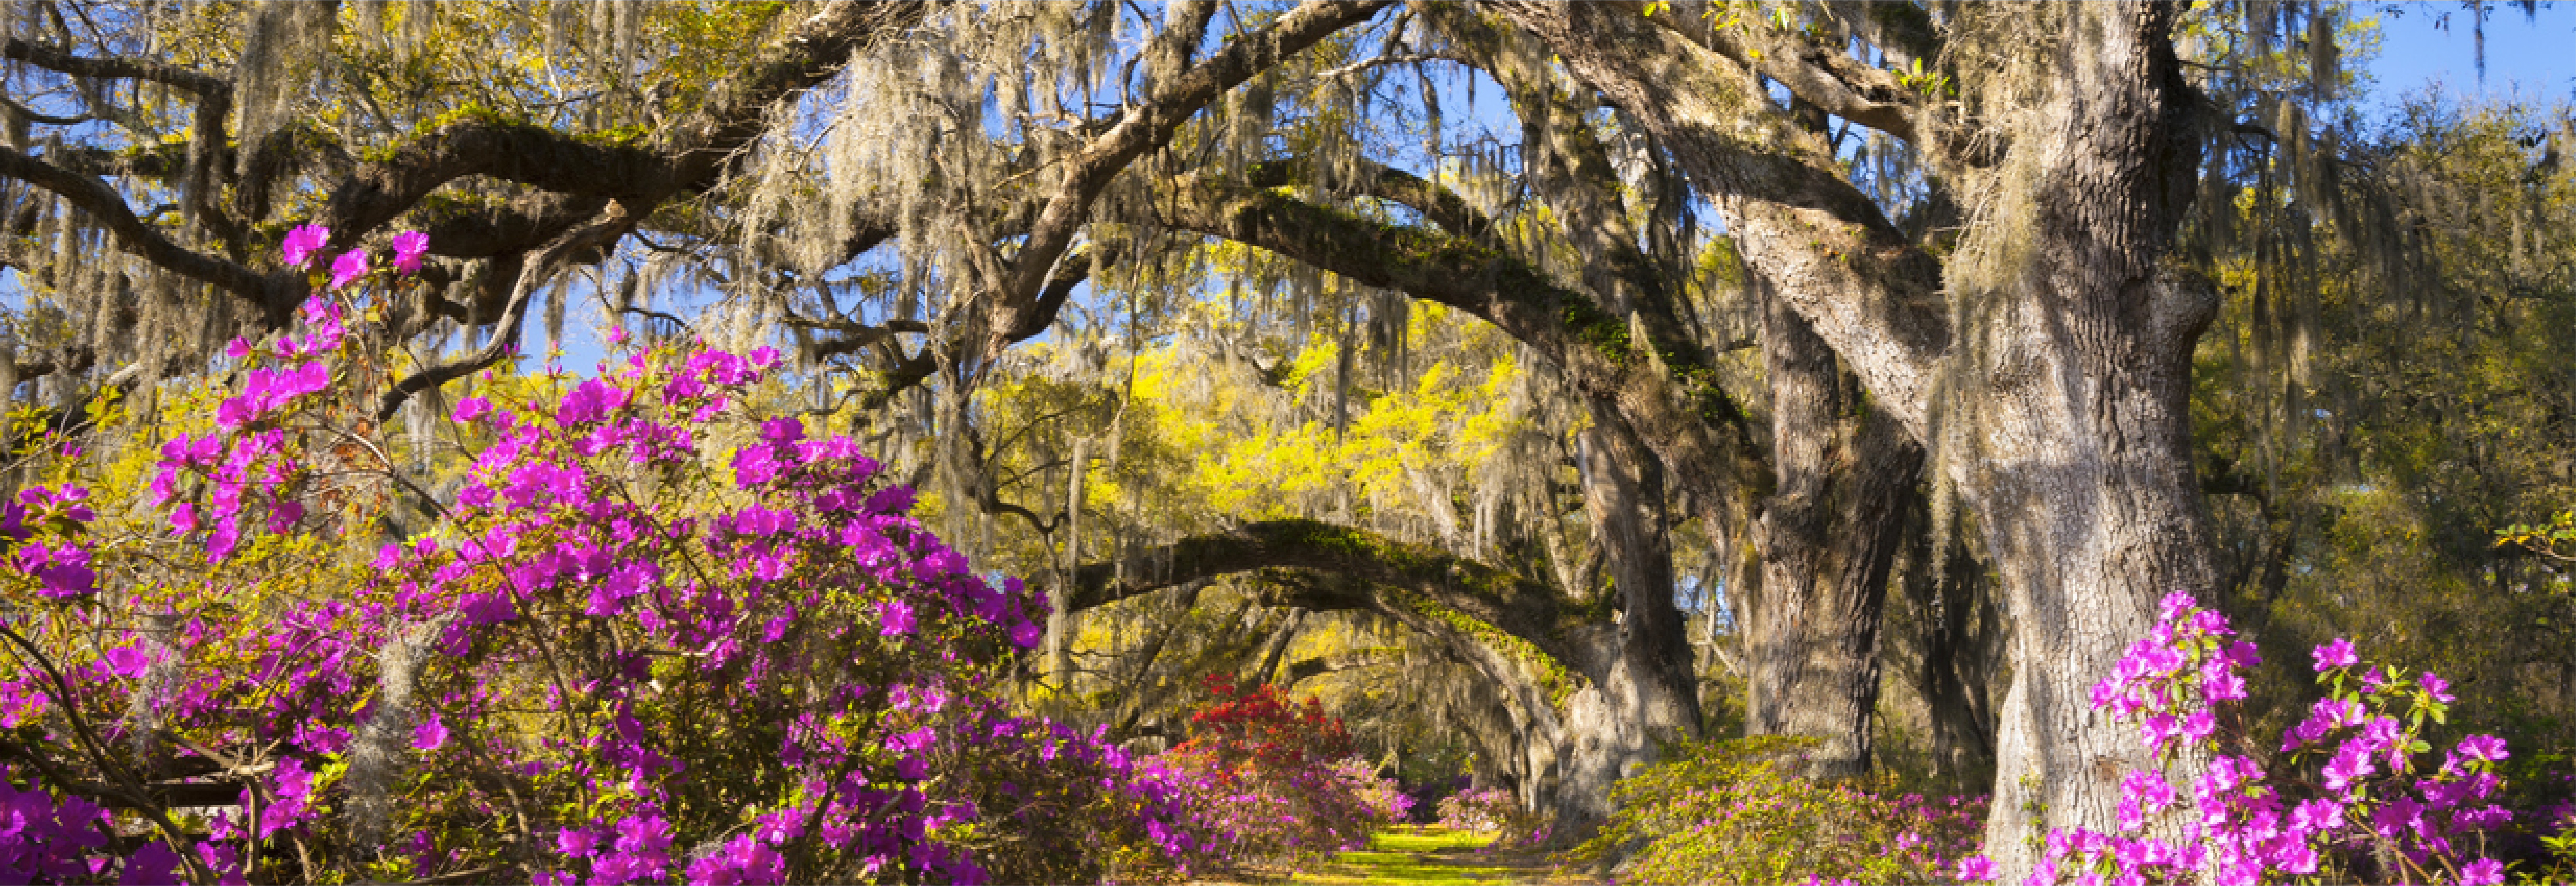 Fort Jackson South Carolina Weather: in the Spring